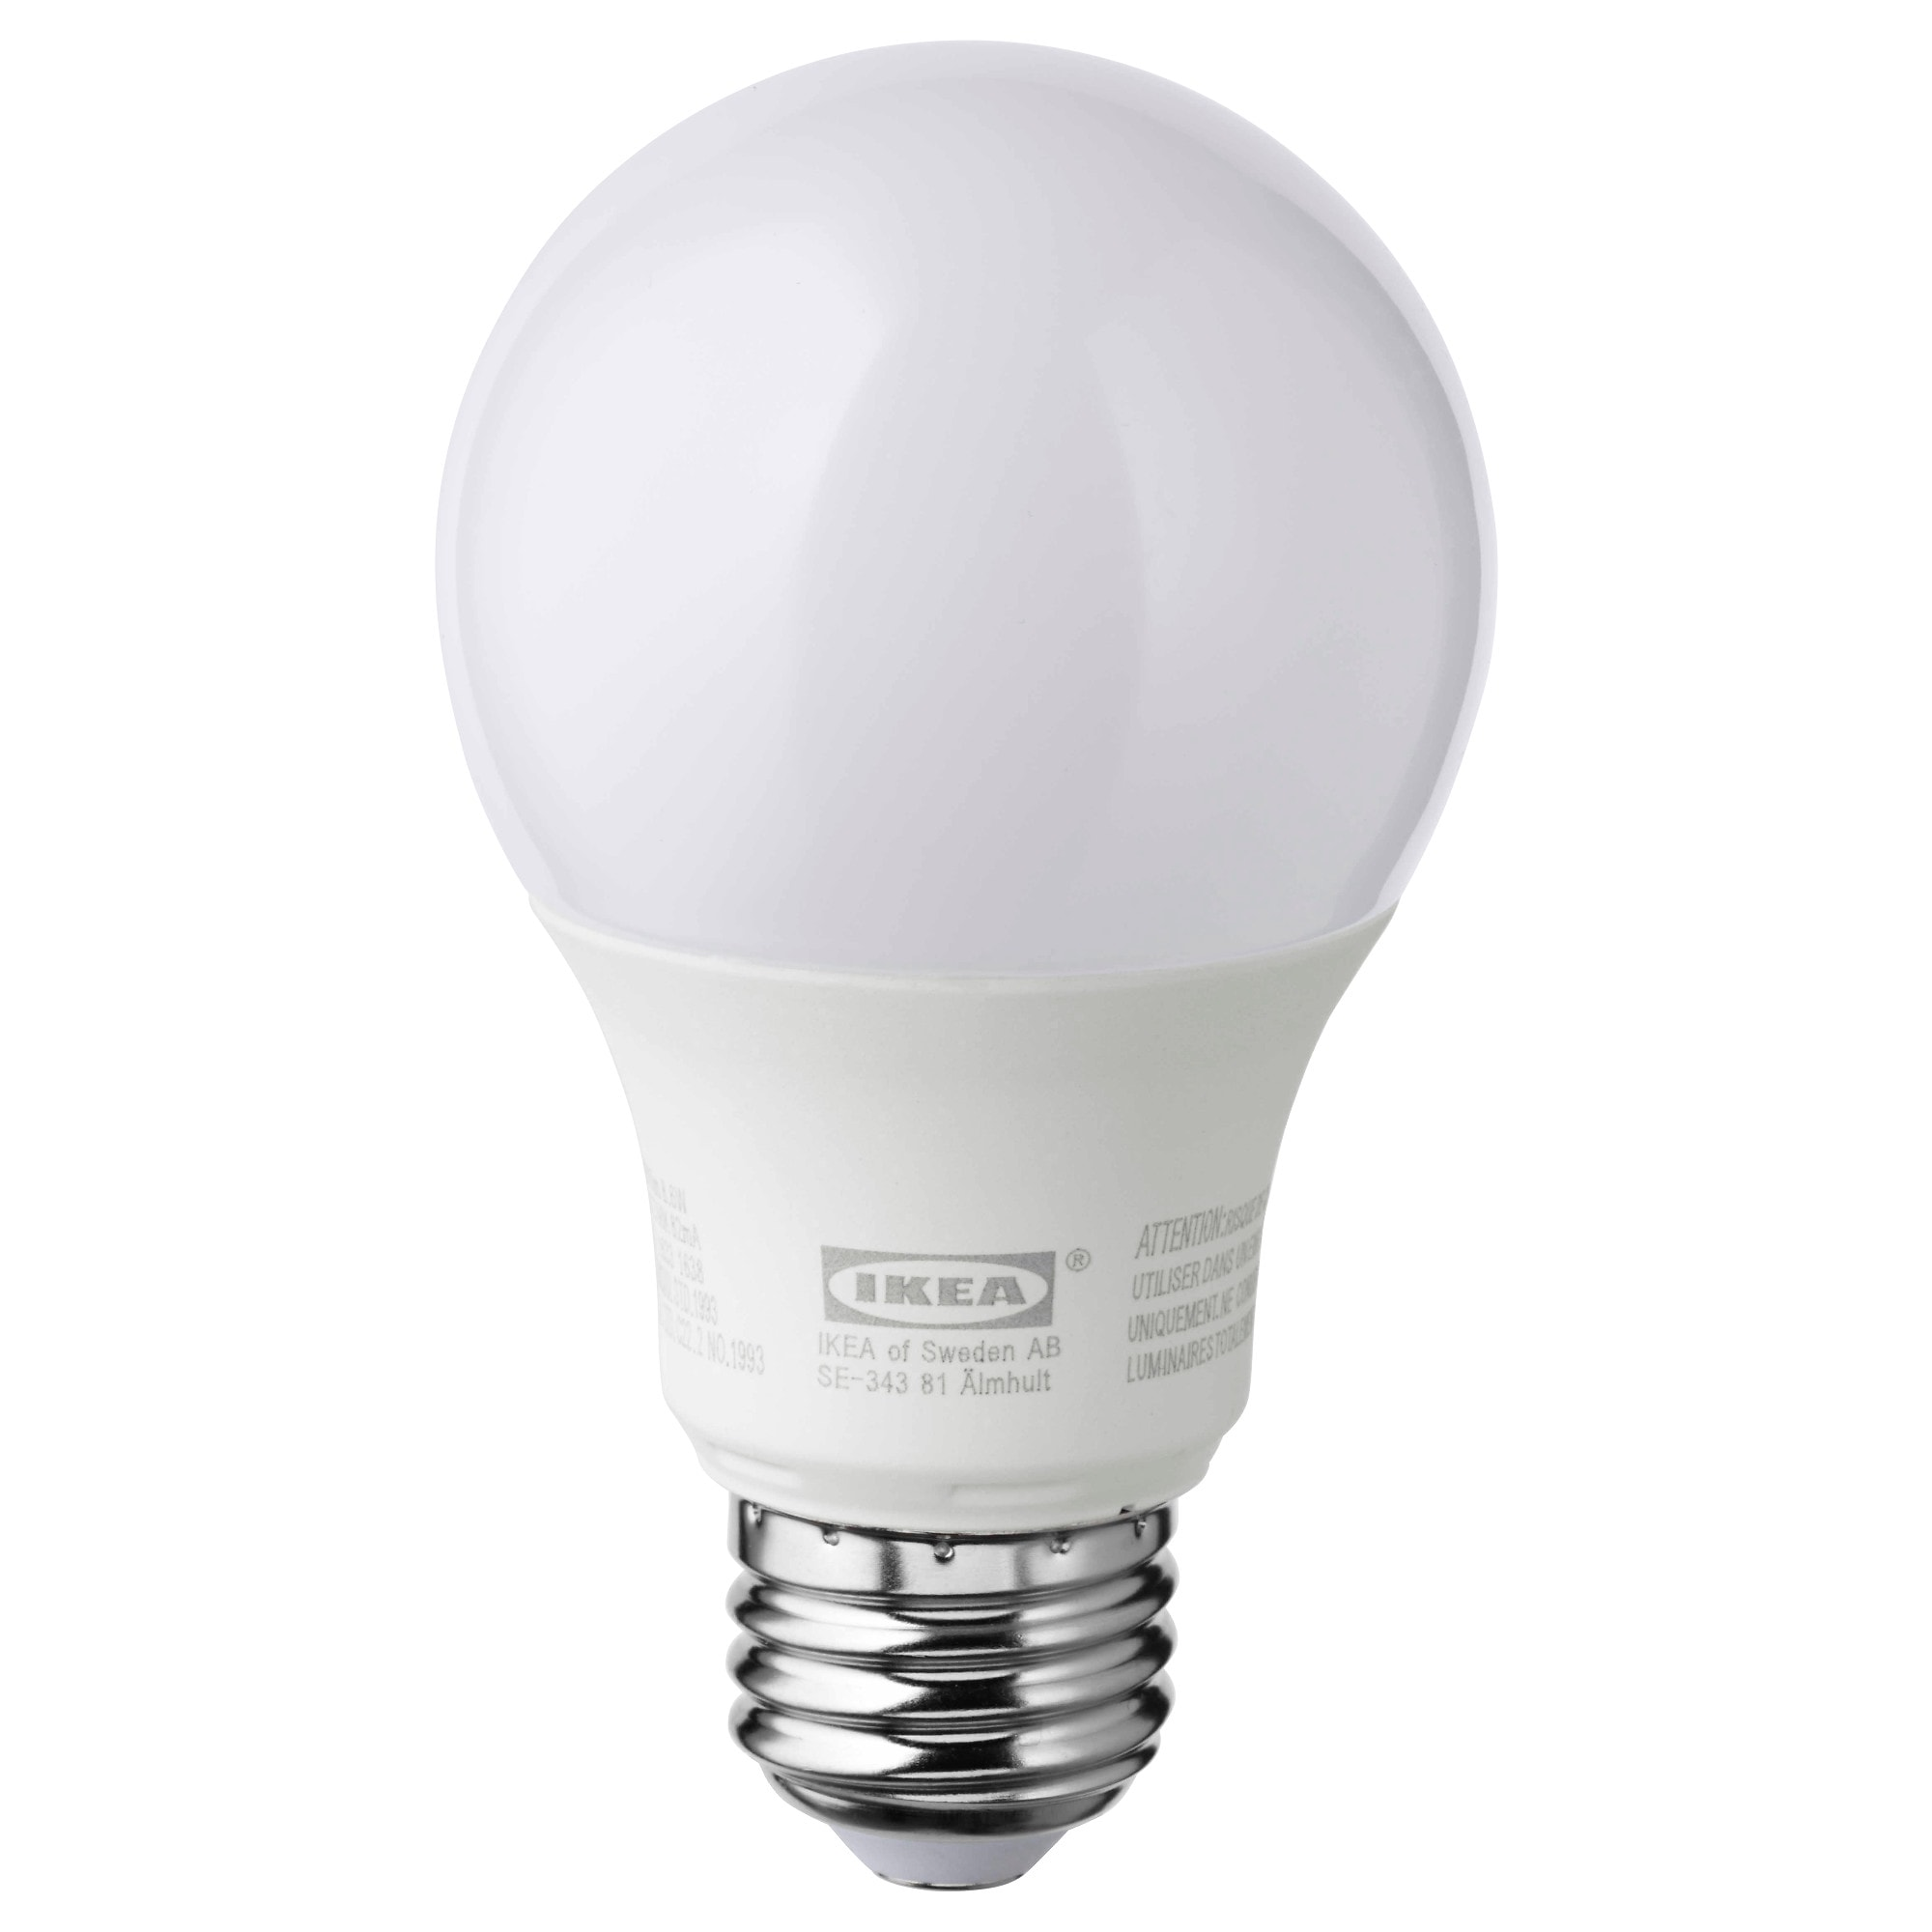 Dimmable light bulbs canadian tire noma 60w a19 led bulb noma user submitted photo lighting Led light bulb cost